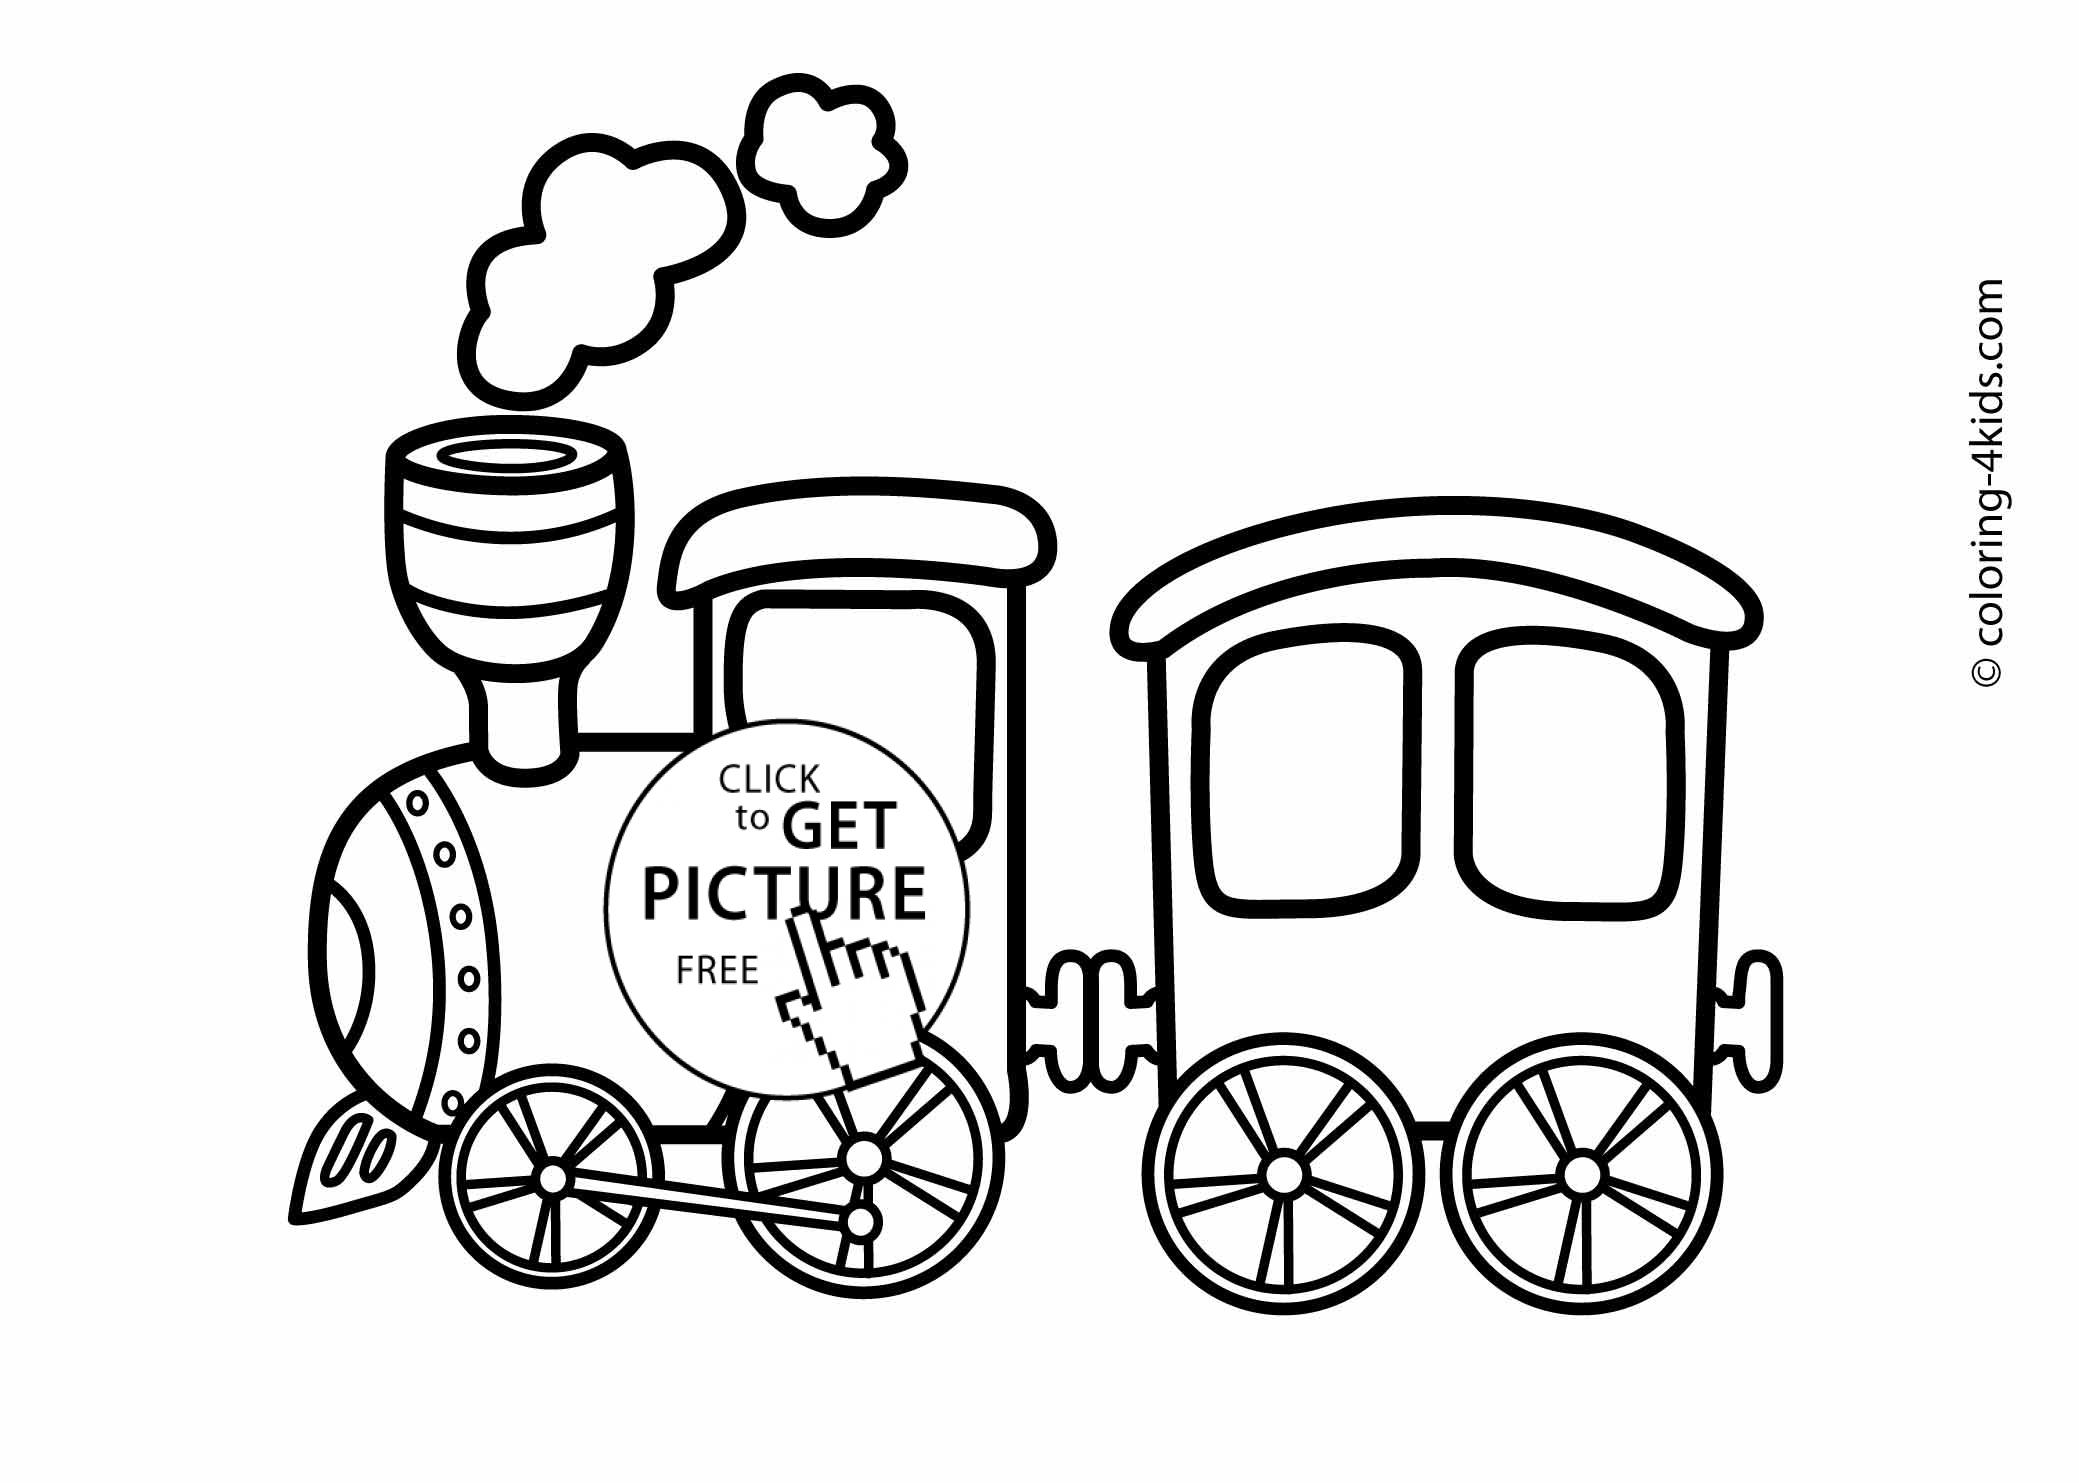 trains coloring pages train coloring pages download and print train coloring pages coloring trains pages